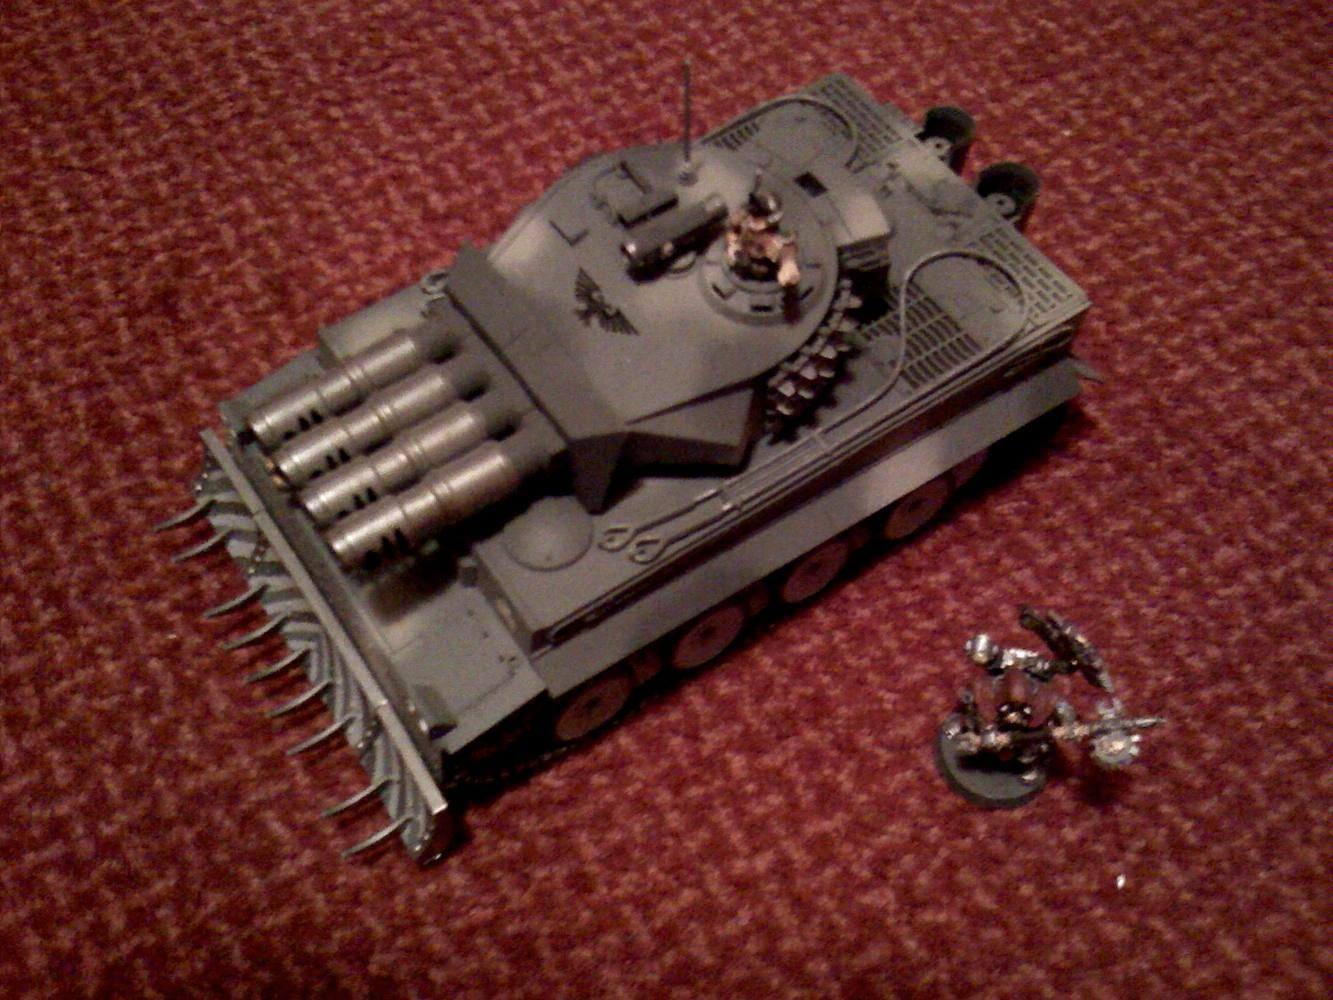 Conversion, Enginseer, Imperial Guard, Super-heavy, Toy, Warhammer 40,000